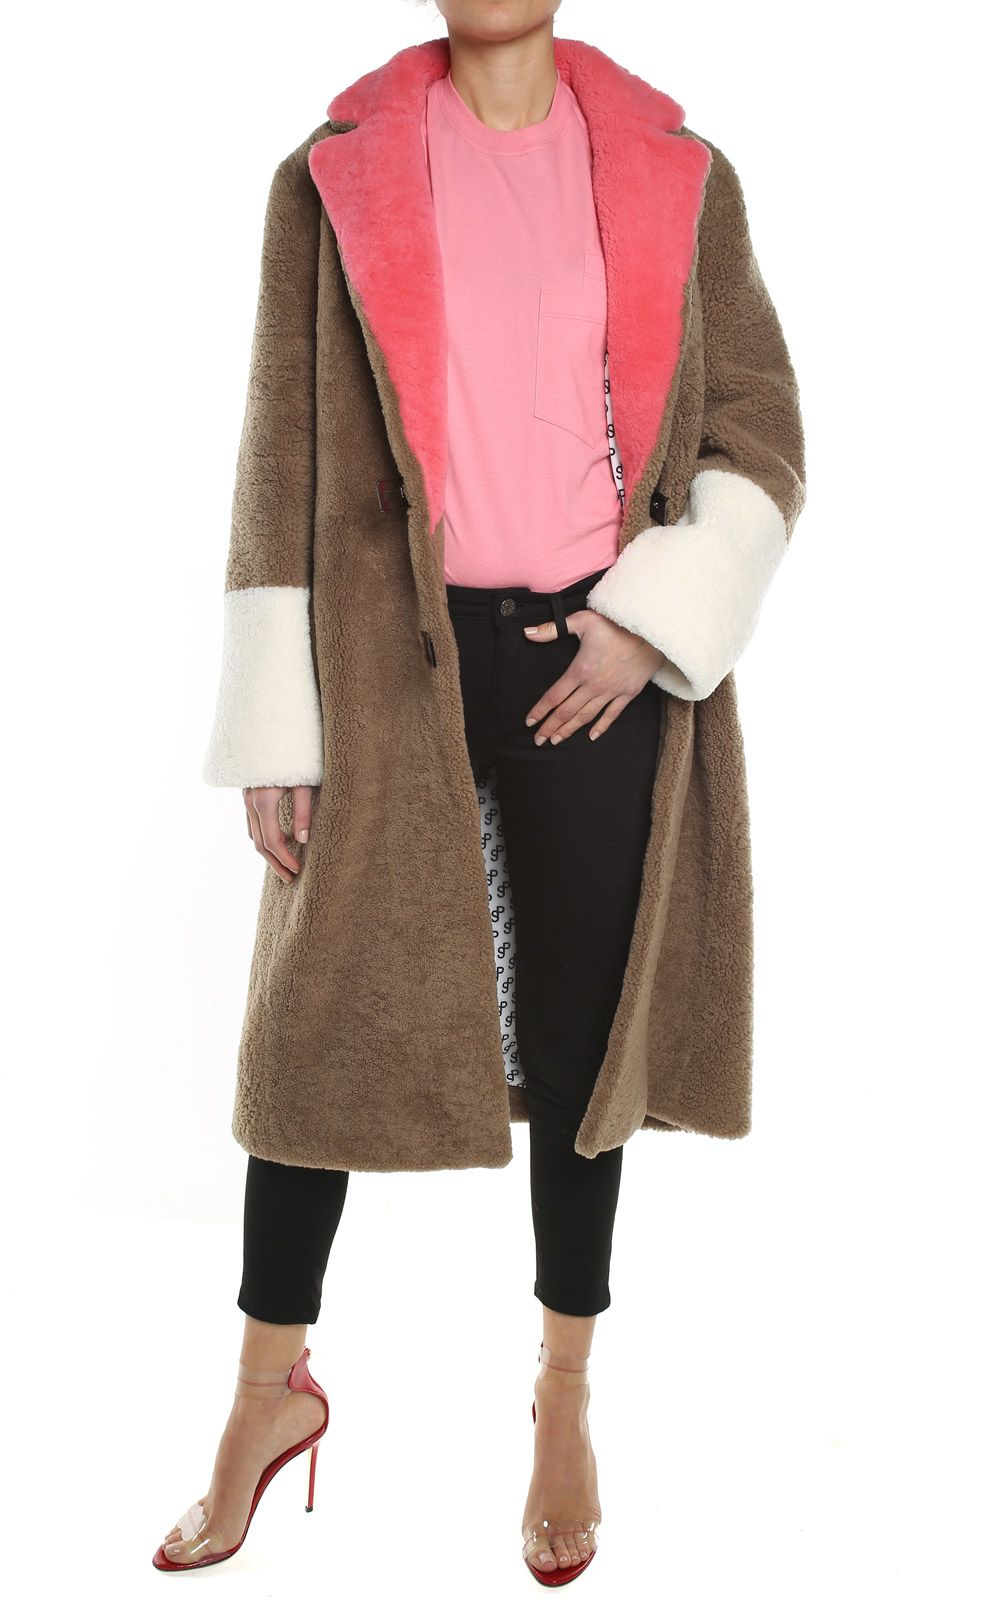 Online Shopping From China Sale Online TOPWEAR - Sweatshirts Saks Potts In China EIlhGZ1